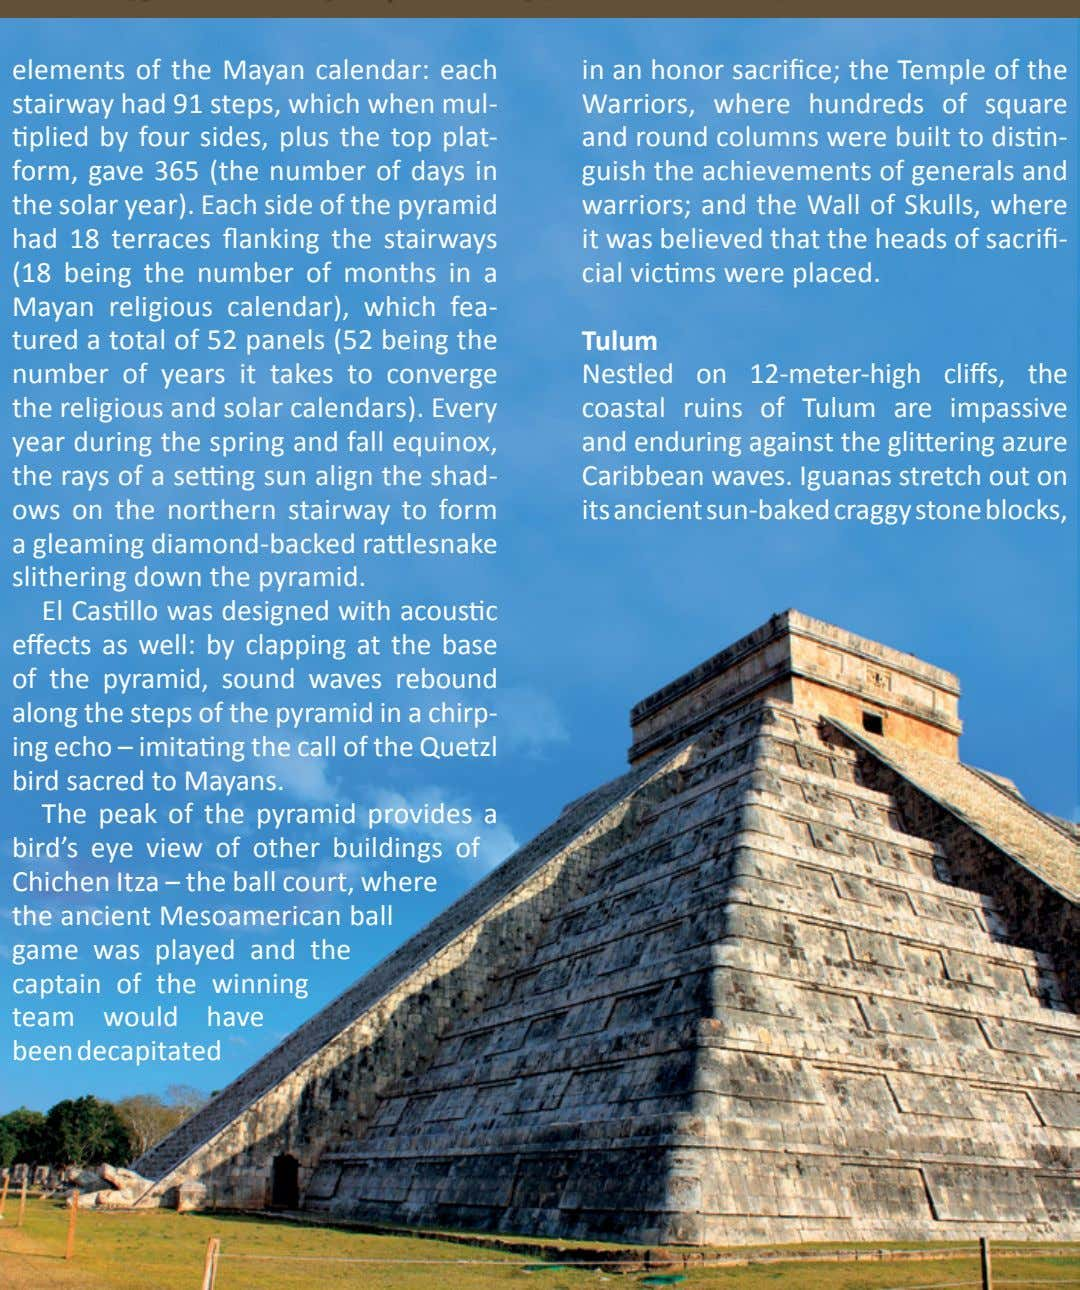 elements of the Mayan calendar: each stairway had 91 steps, which when mul- tiplied by